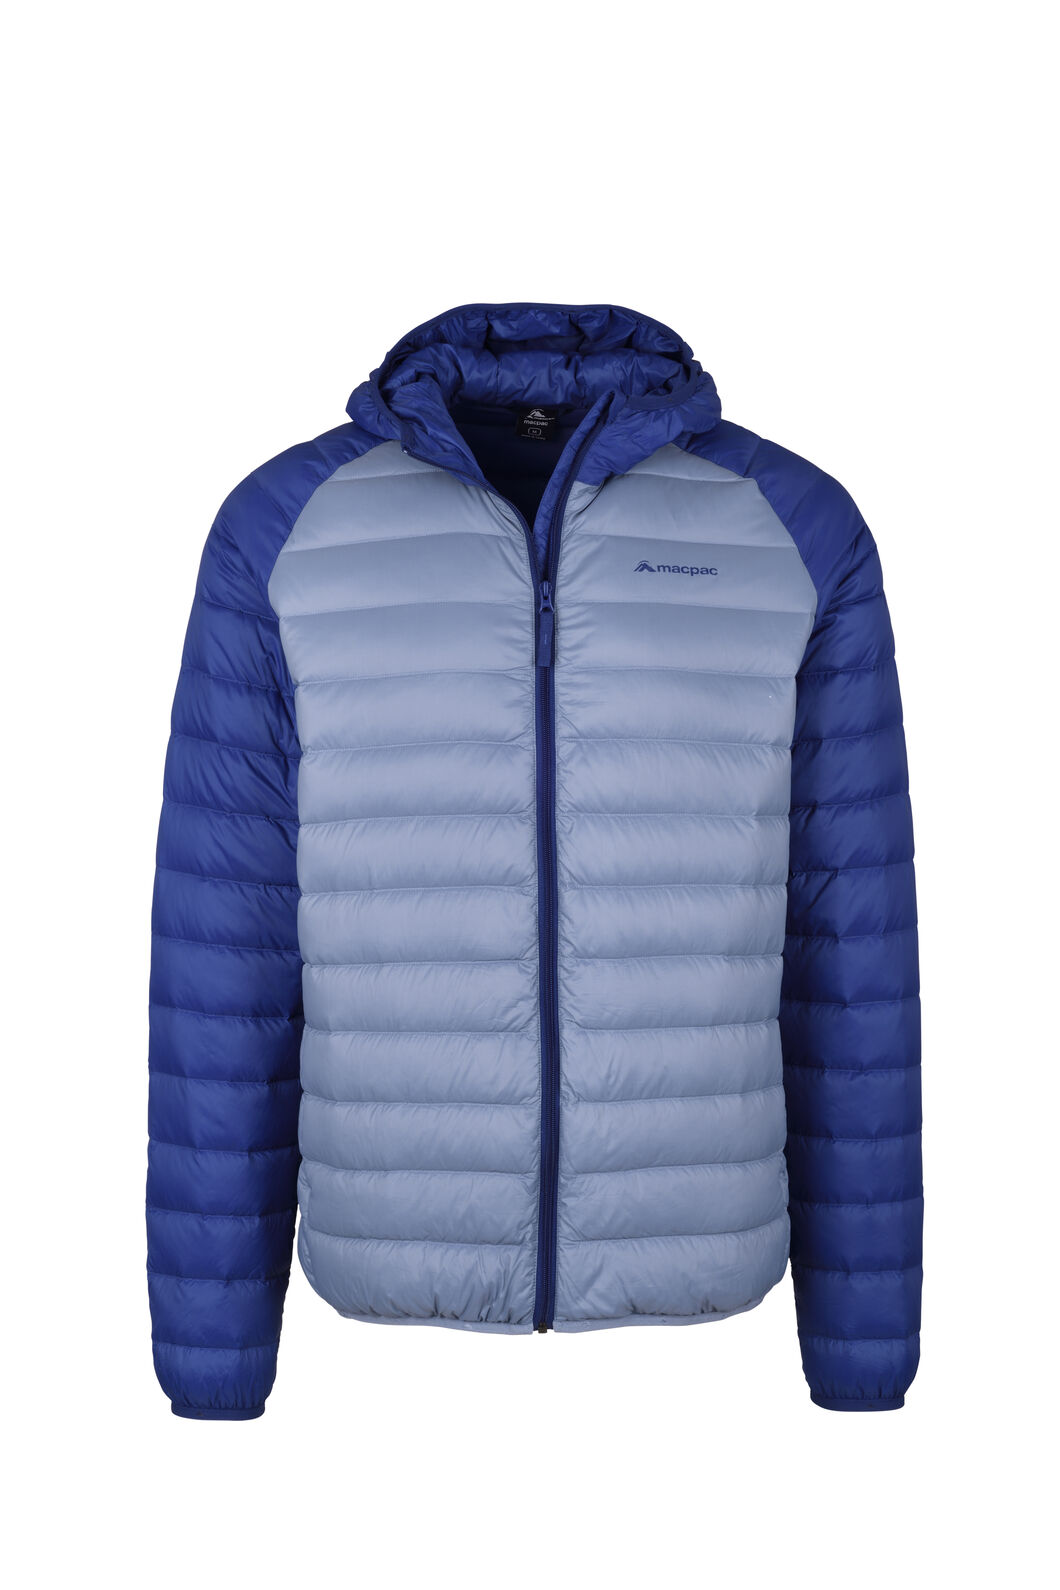 Macpac Uber Hooded Down Jacket - Men's, Flint Stone/Blue Depths, hi-res